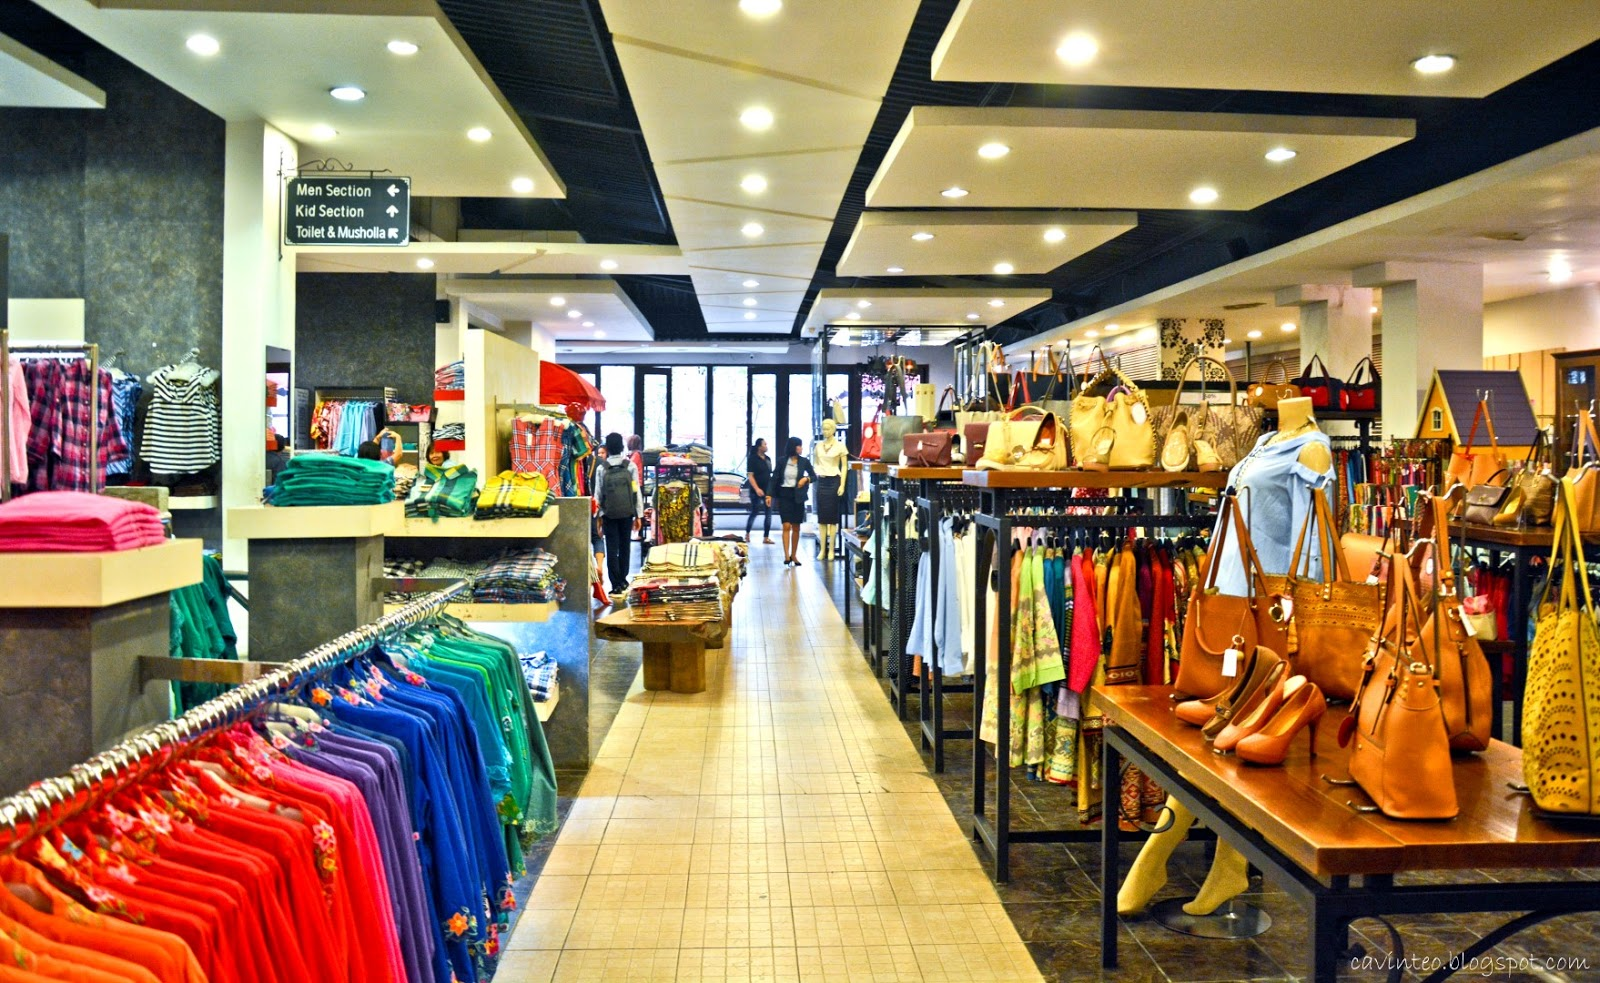 62f5cfec7ac Entree Kibbles: Branded Factory Outlet Shopping - Rumah Mode, Secret ...